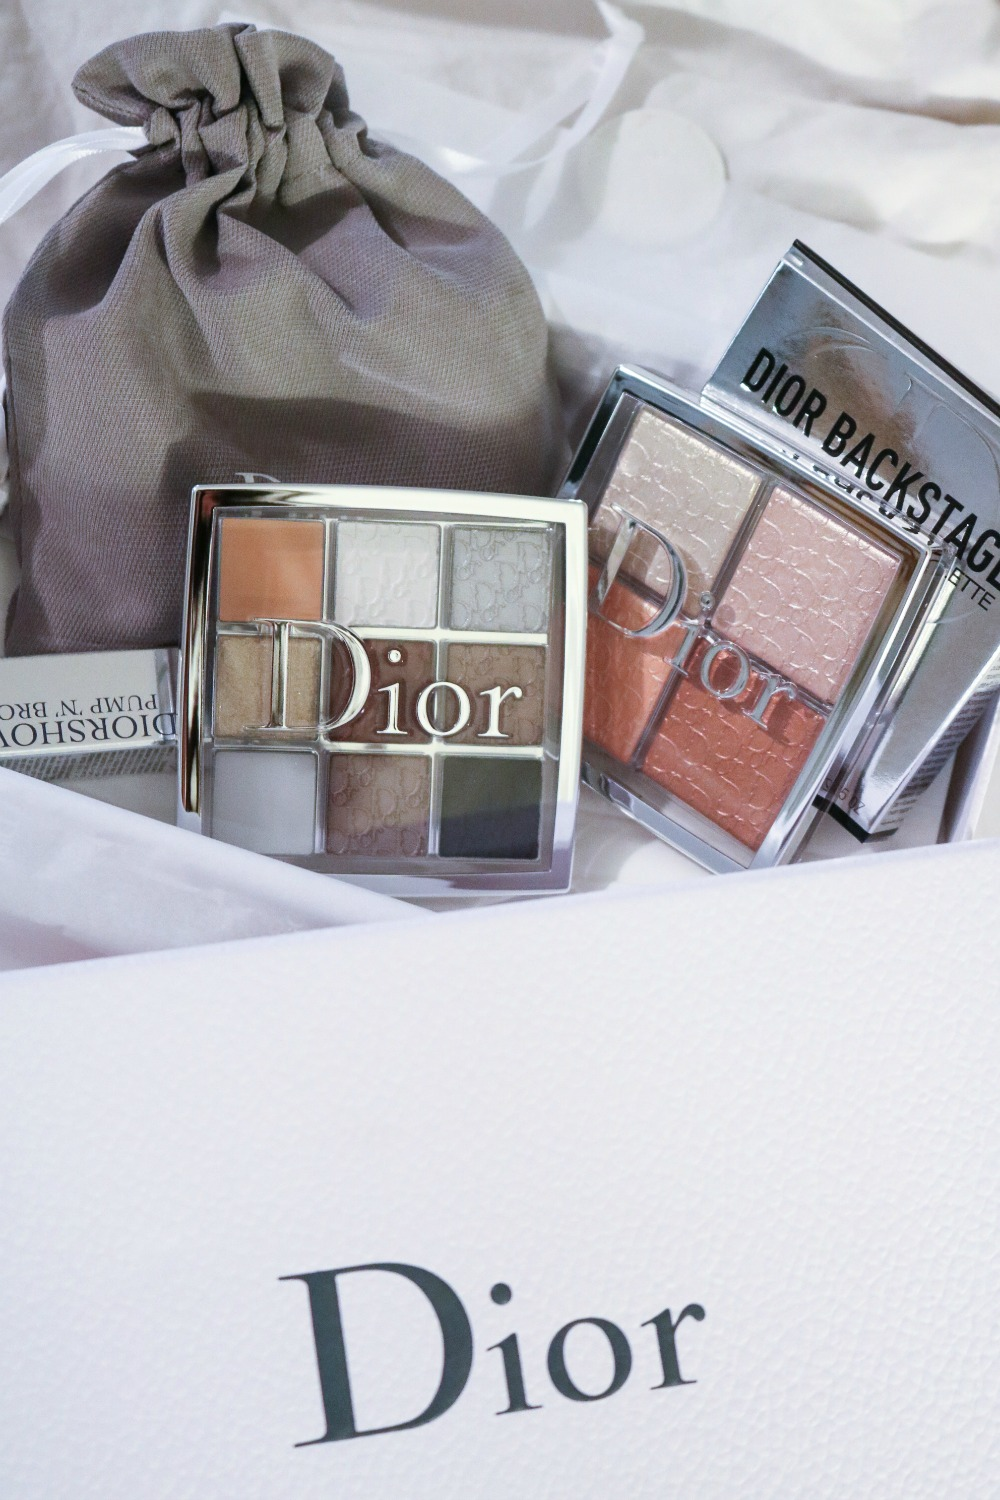 Dior Backstage Glow palette and Custom Eyeshadow Palette I DreaminLace.com